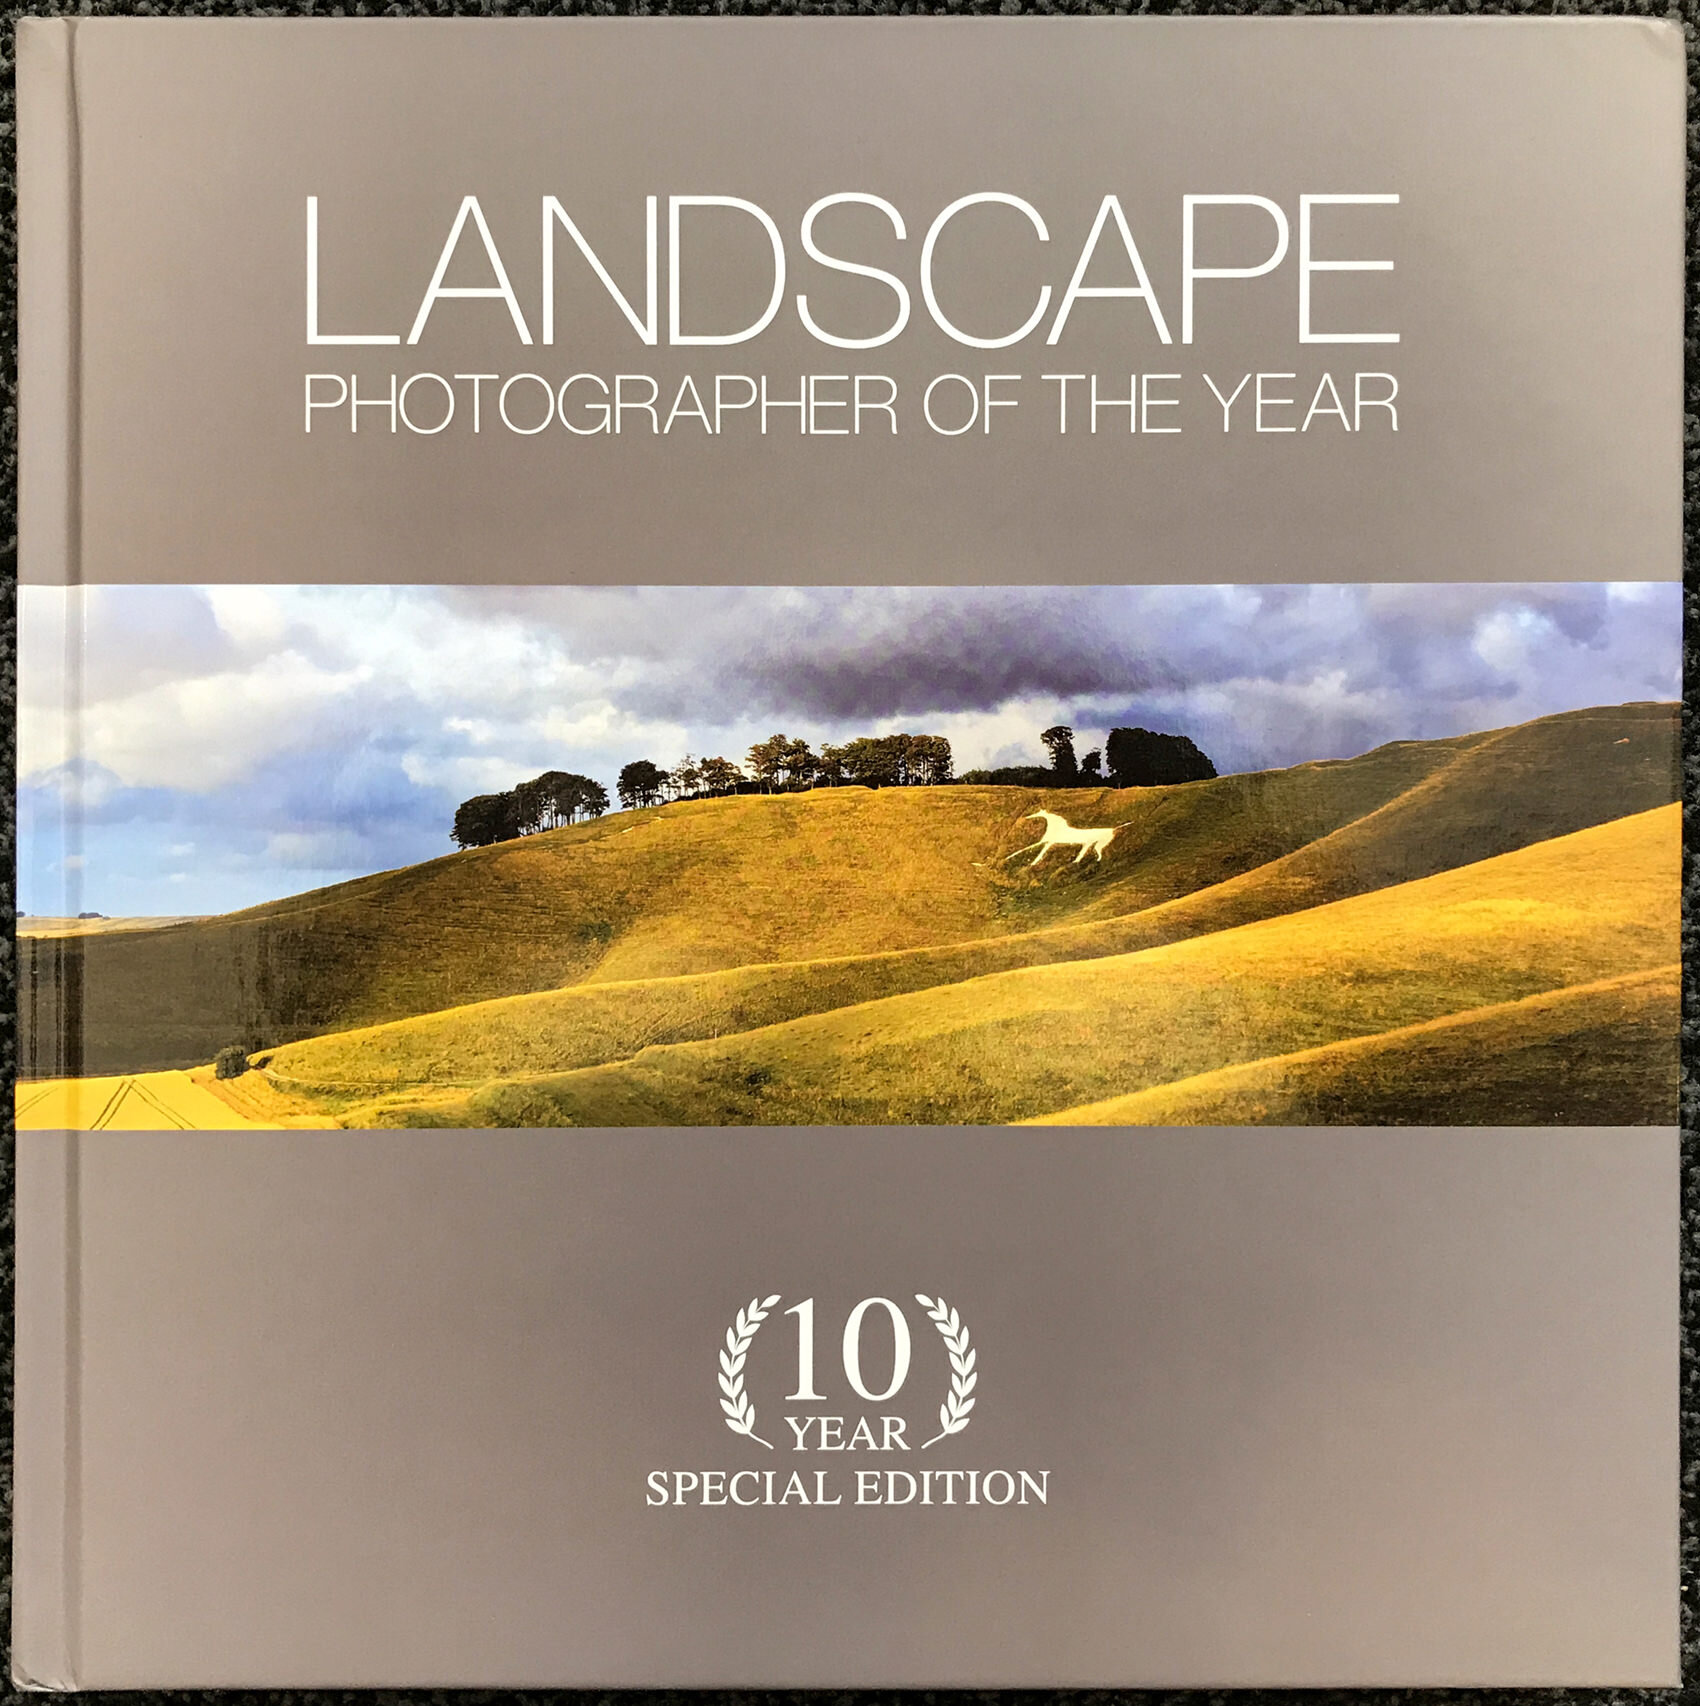 Landscape Photographer of the Year - 10 Year Special Edition - Cover